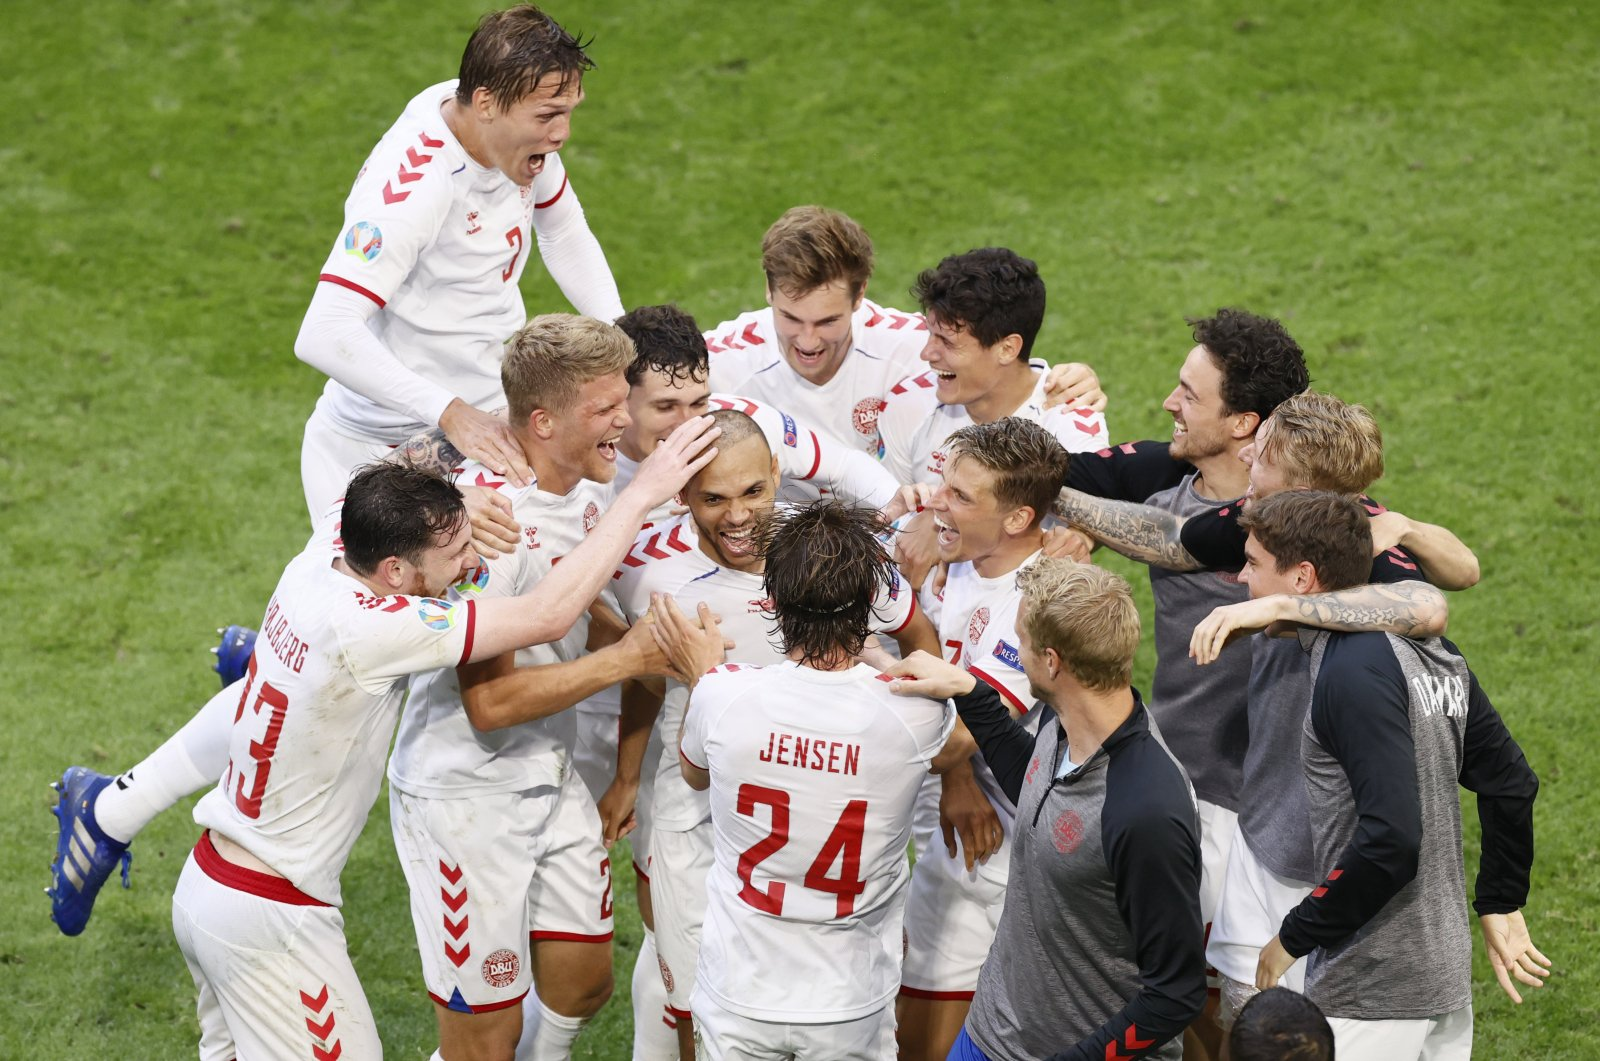 Denmark's Martin Braithwaite (C) celebrates with his teammates after his goal against Wales during the Euro 2020 match against Wales at Johan Cruyff Arena in Amsterdam, the Netherlands, June 26, 2021. (AP Photo)